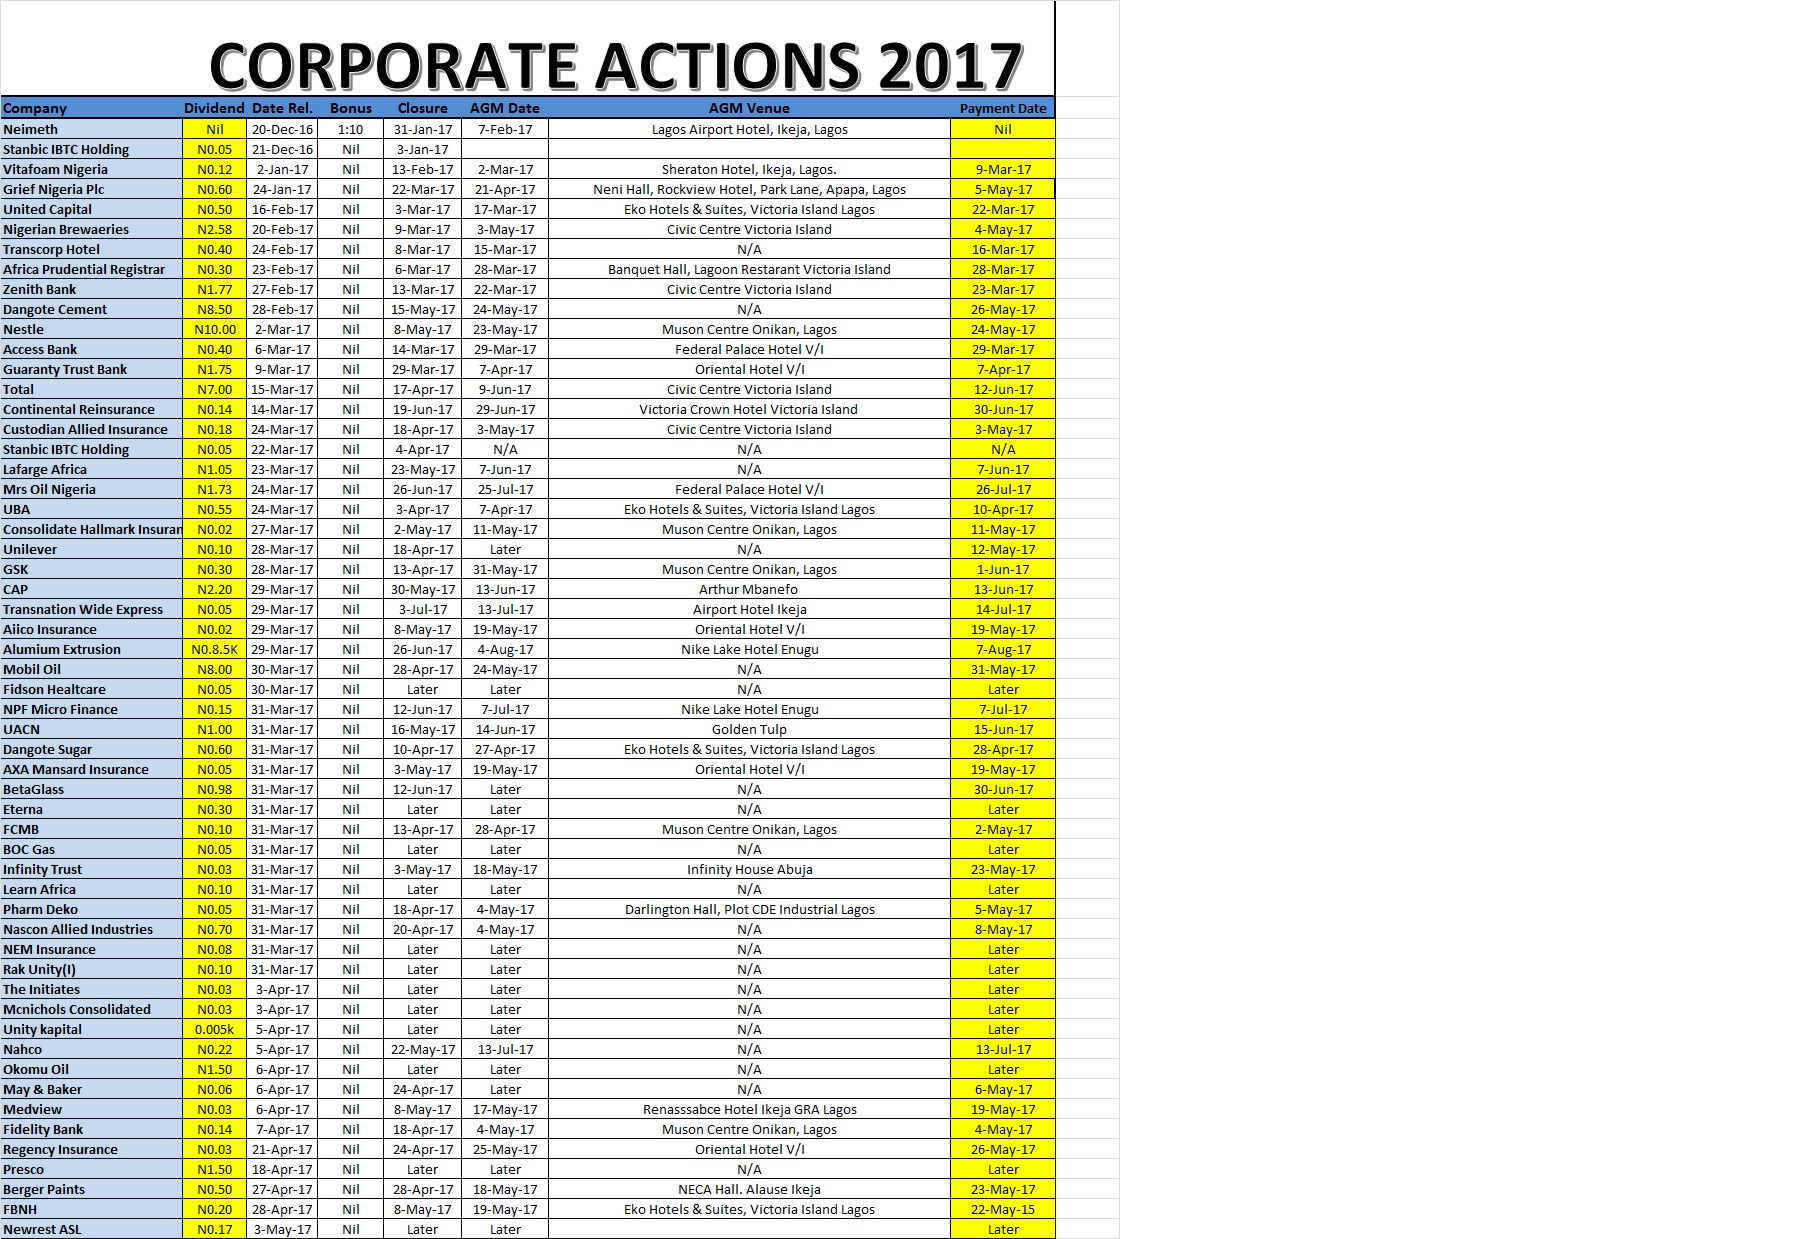 Photo of Corporate Actions As At May 5, 2017